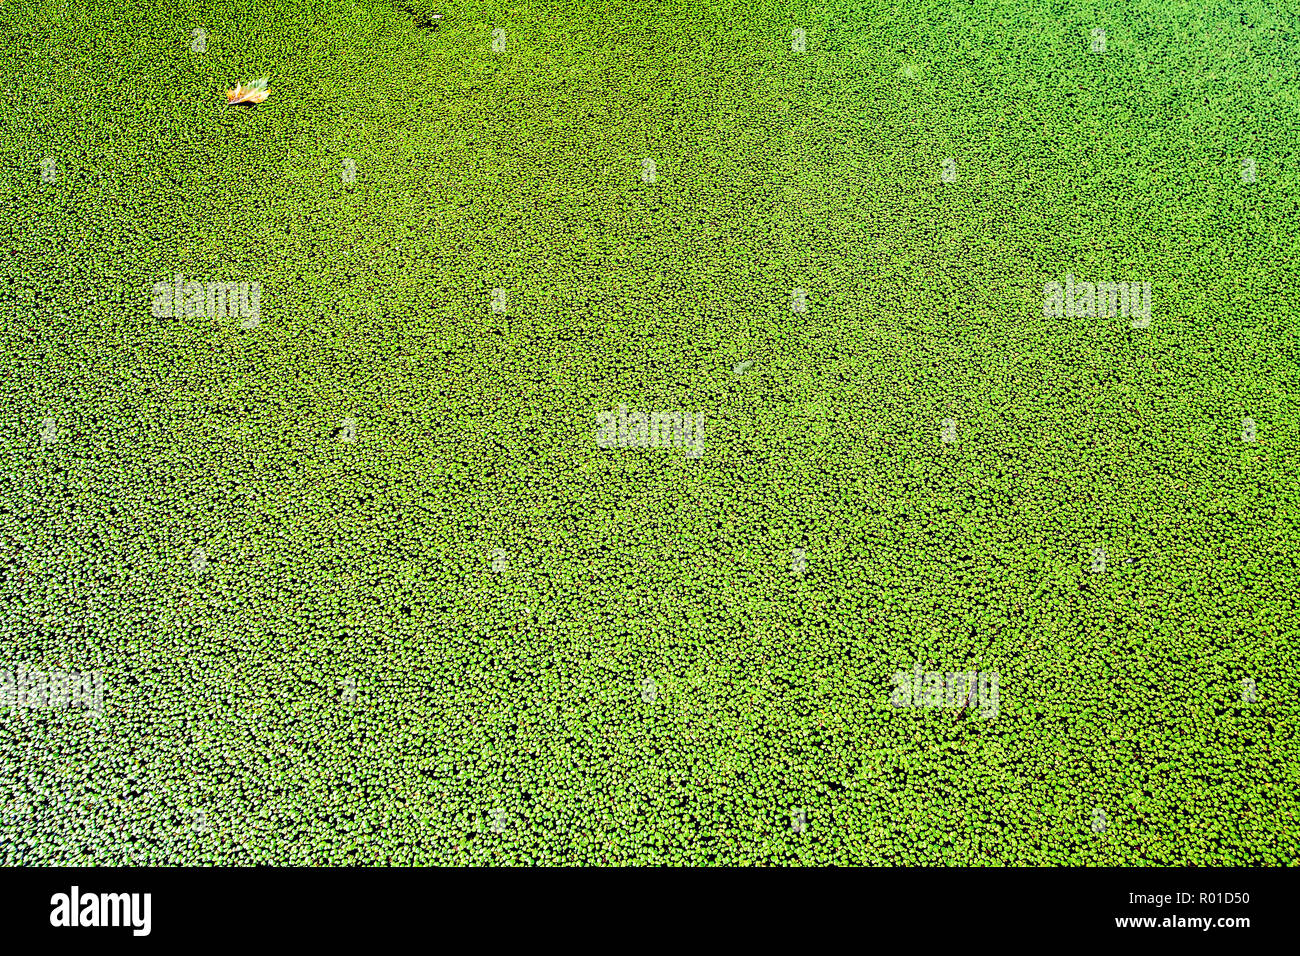 summer algal bloom on surface of London canal - Stock Image